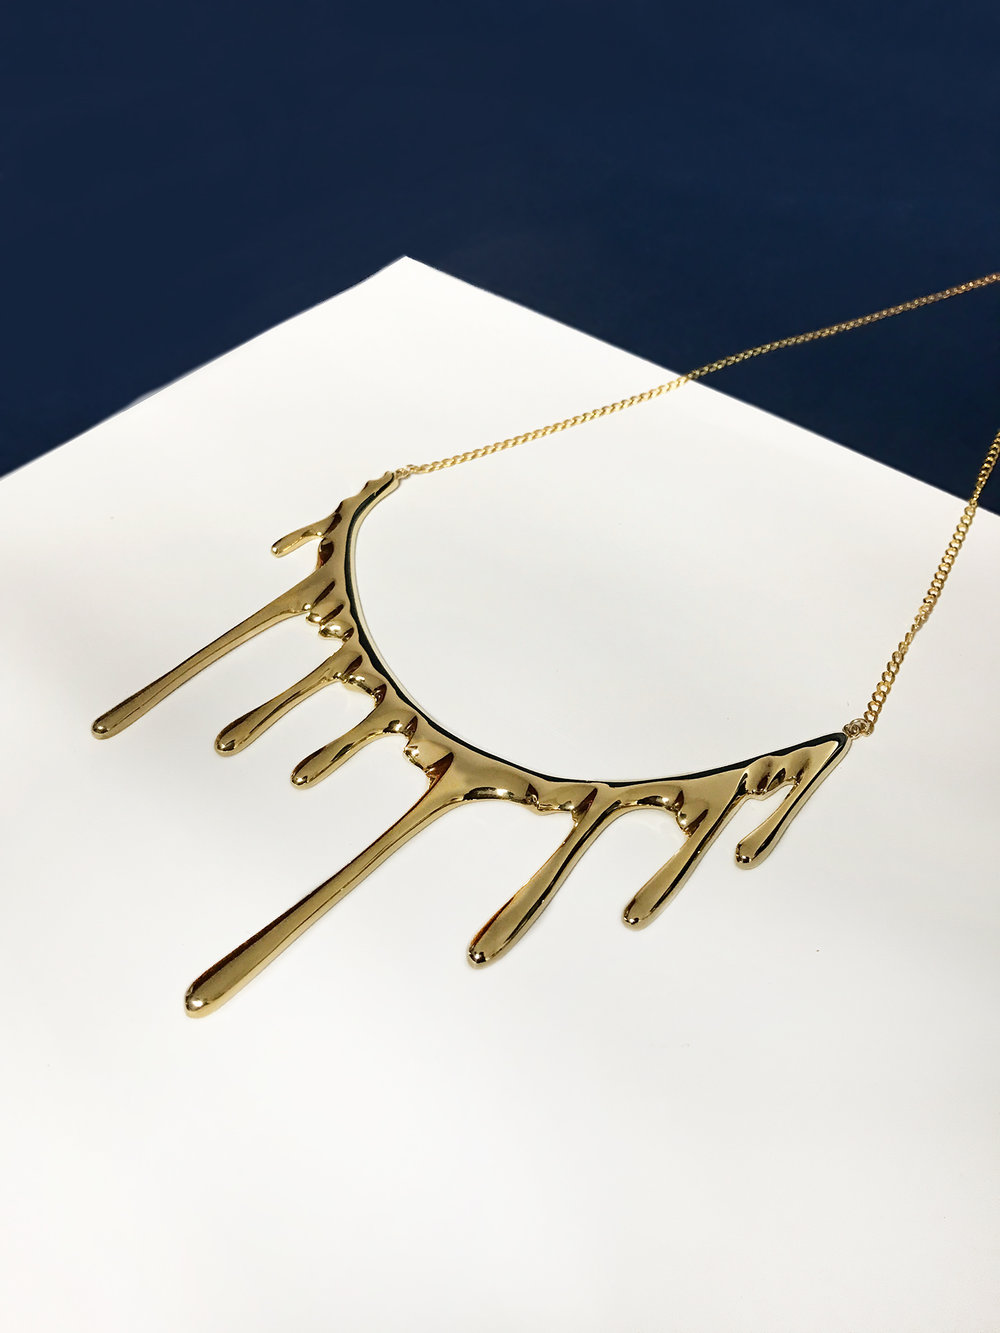 Bloody necklace dorado1 1500.jpg